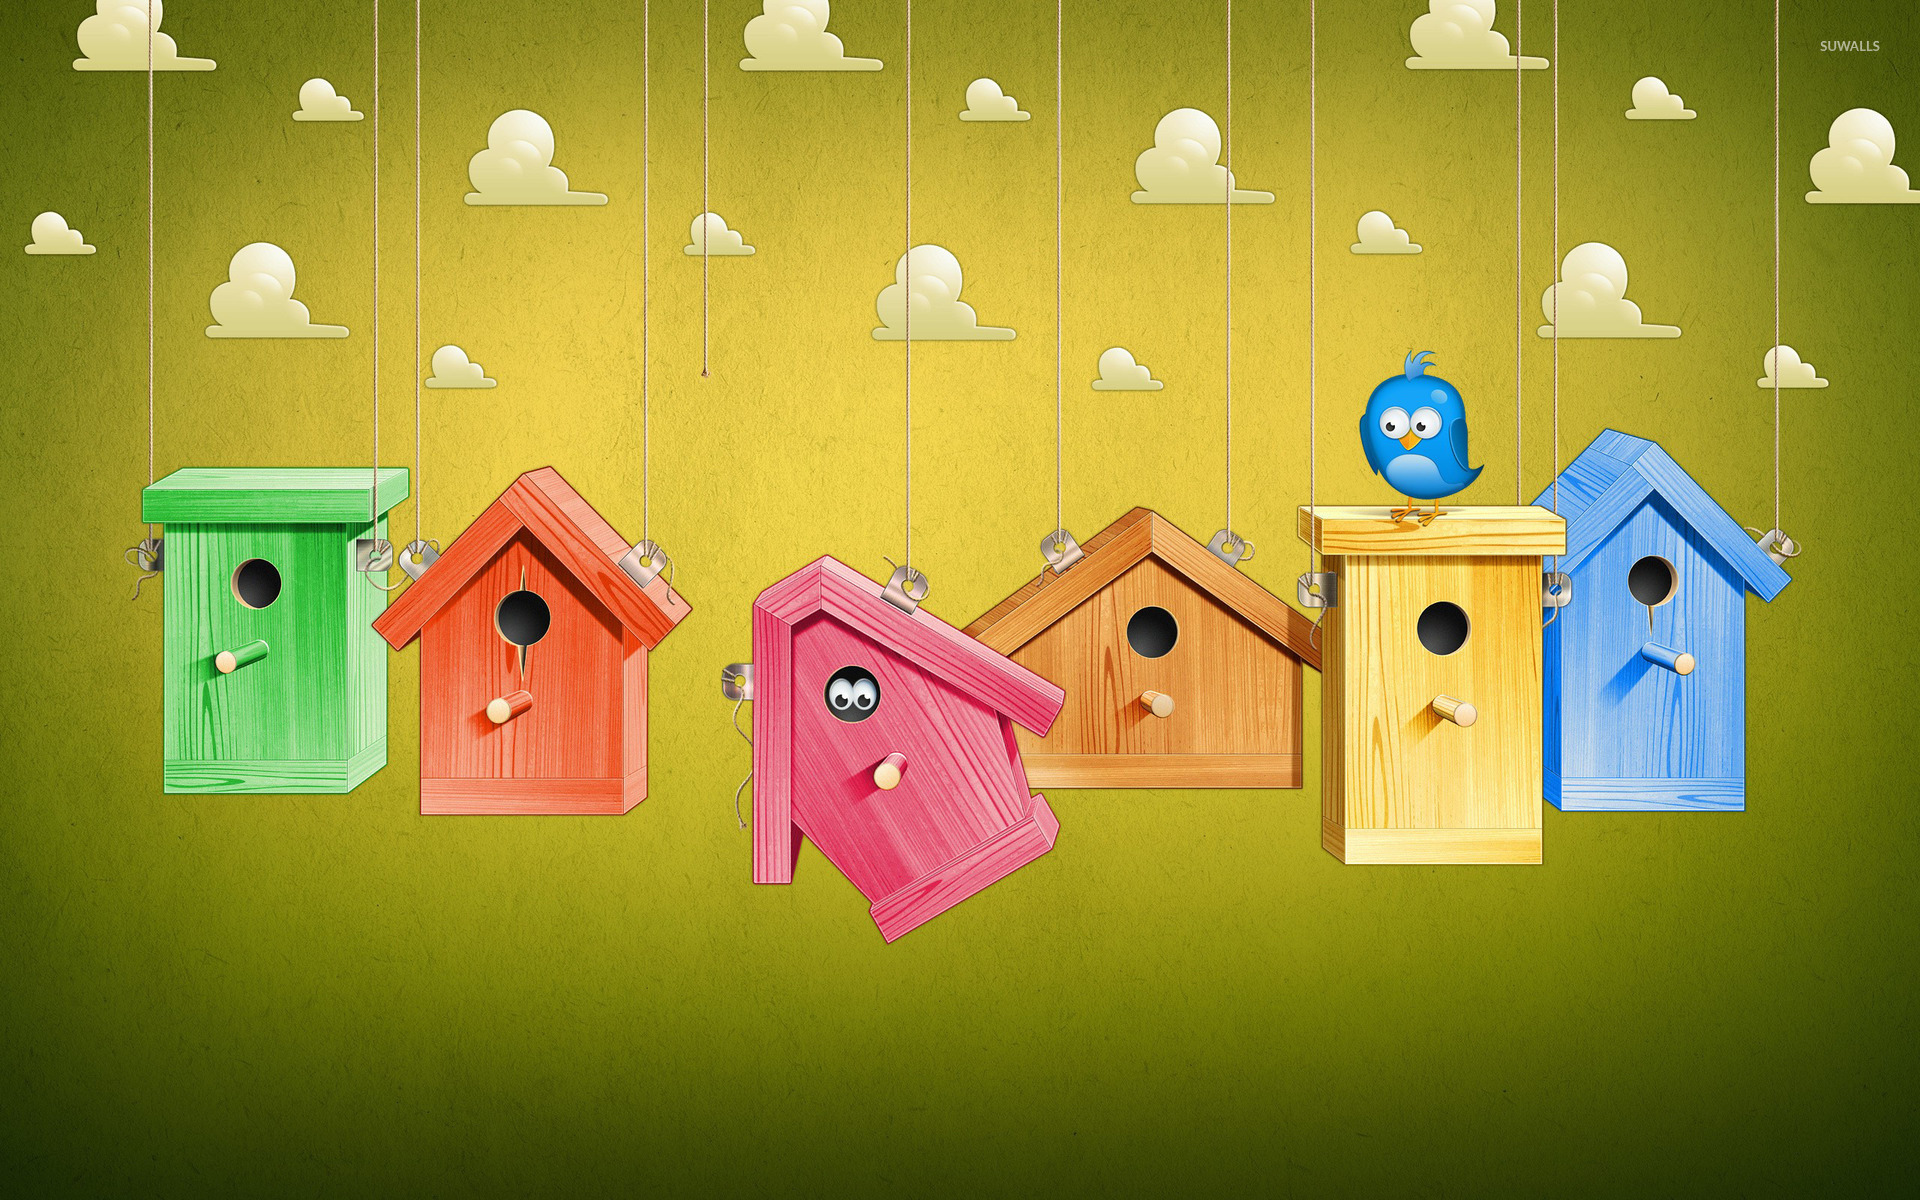 Colorful bird houses wallpaper digital art wallpapers for Wallpaper with houses on